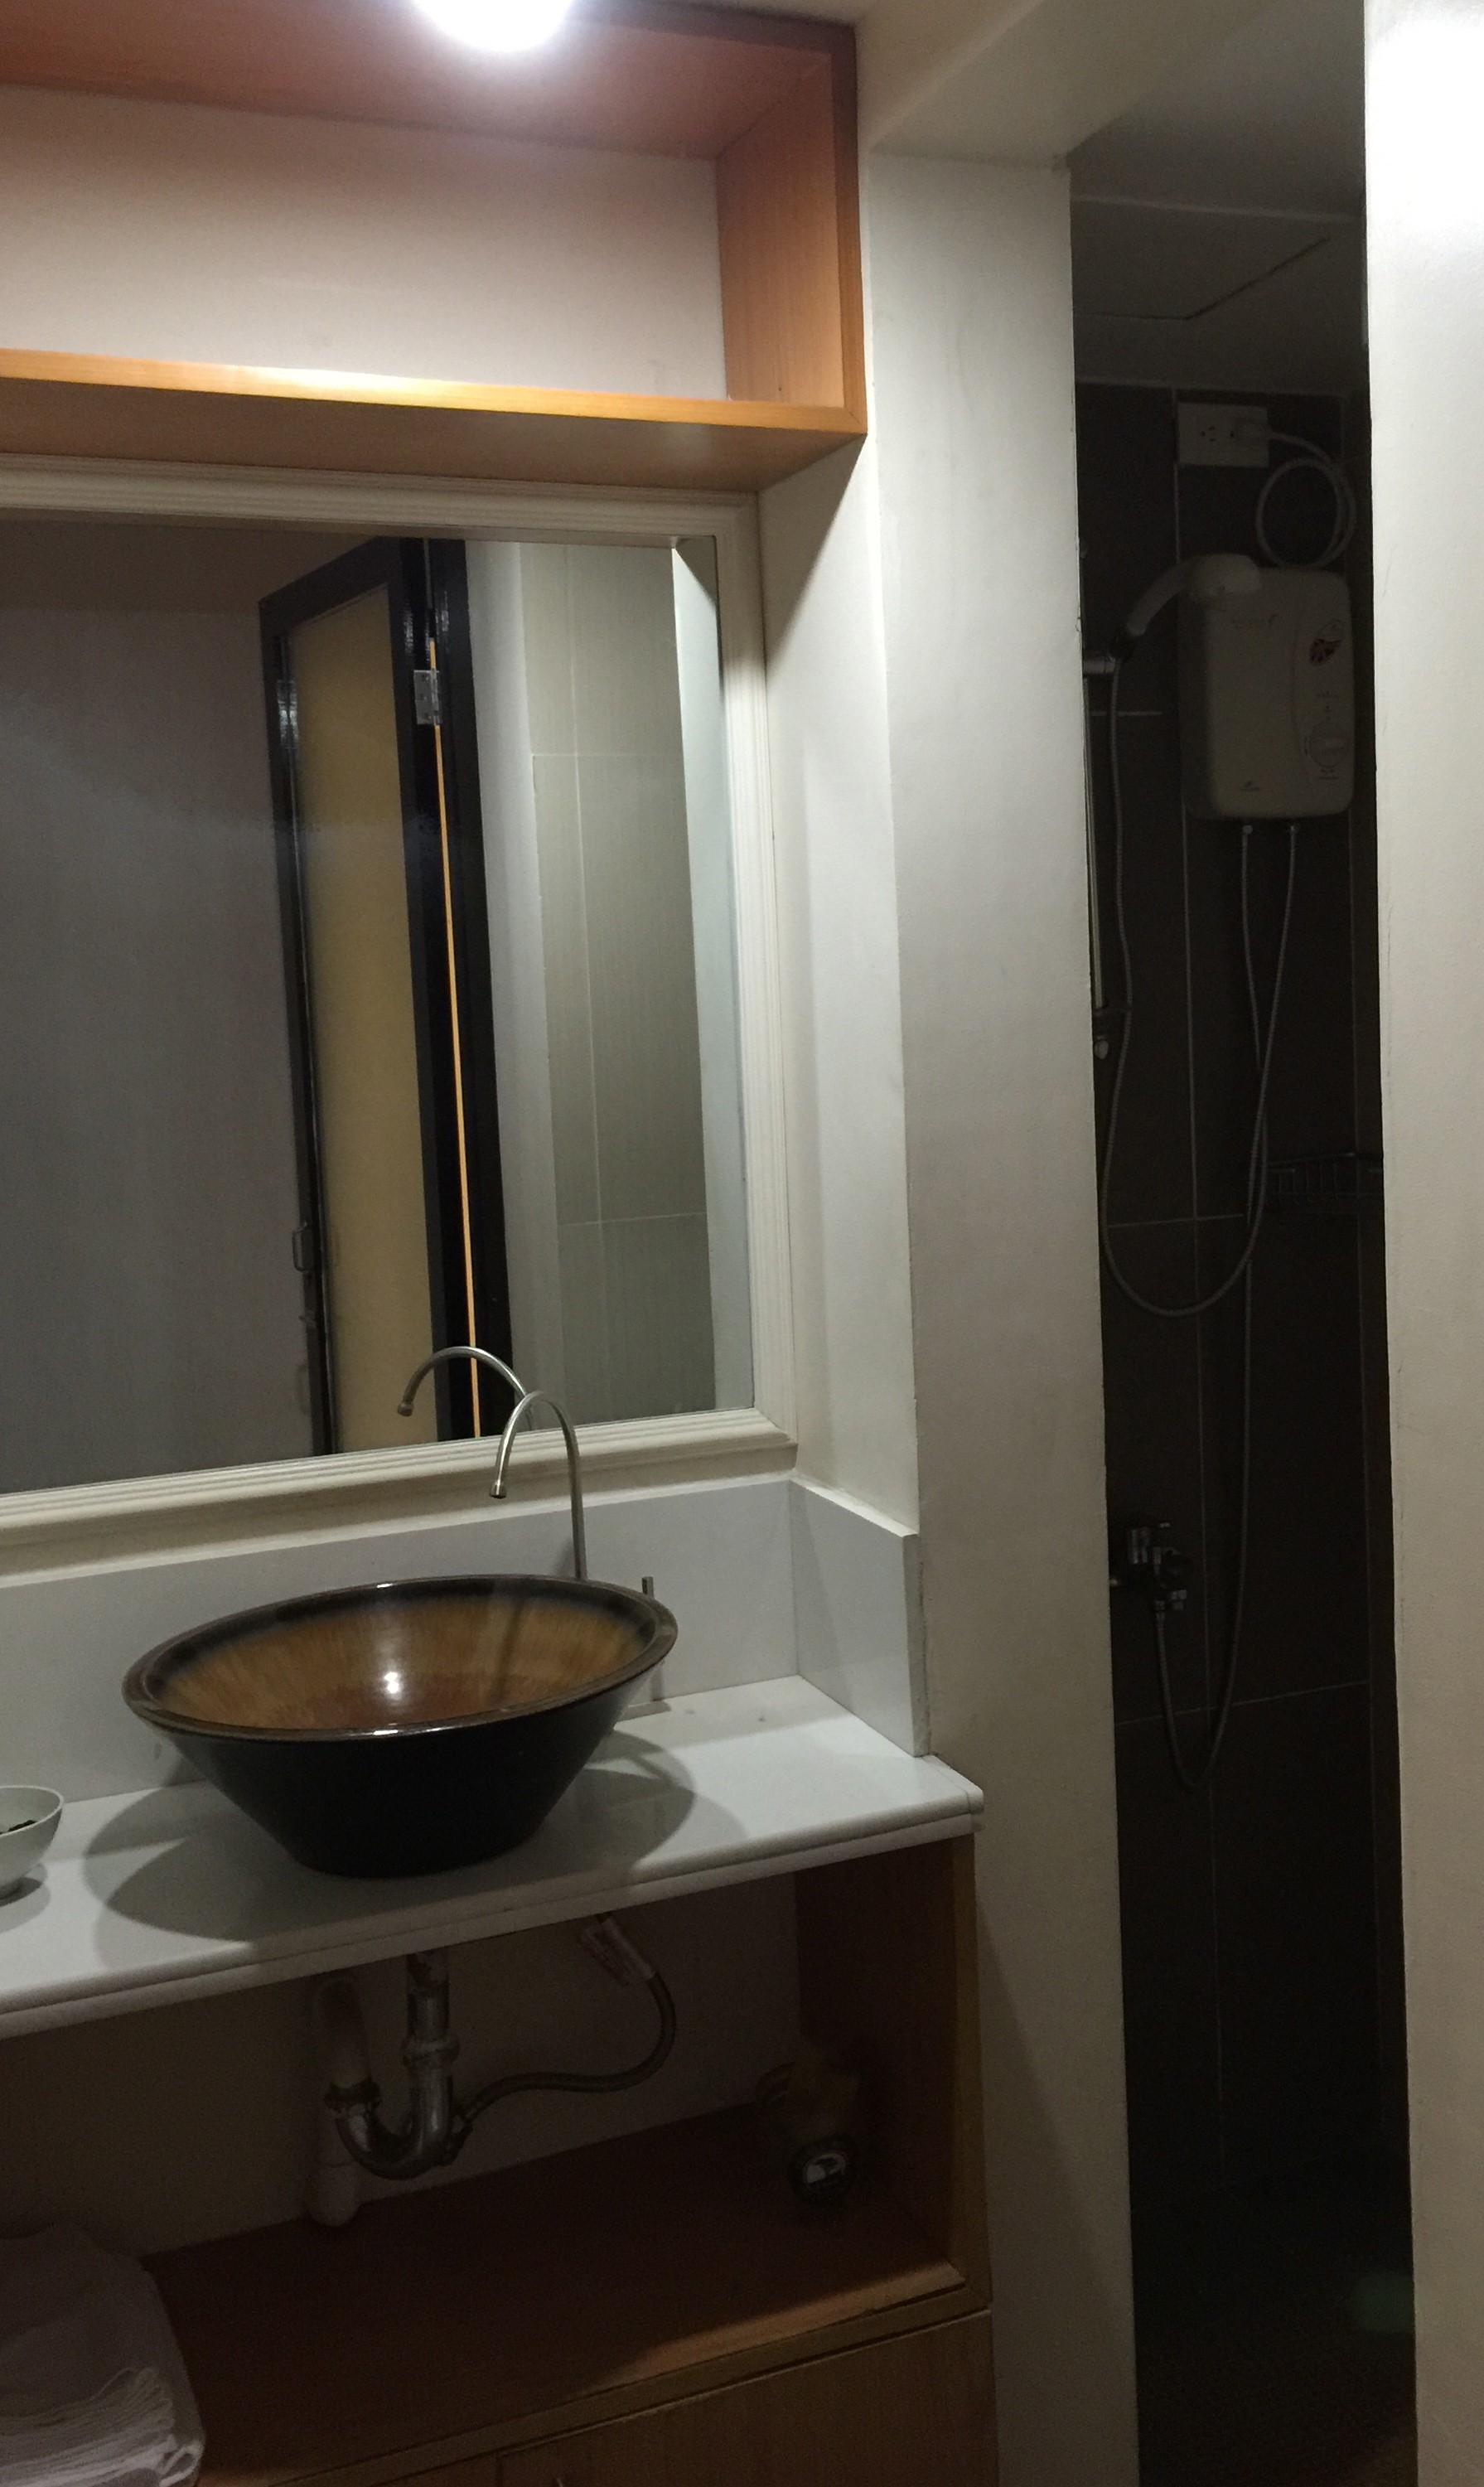 FOR SALE: Apartment / Condo / Townhouse Davao 3